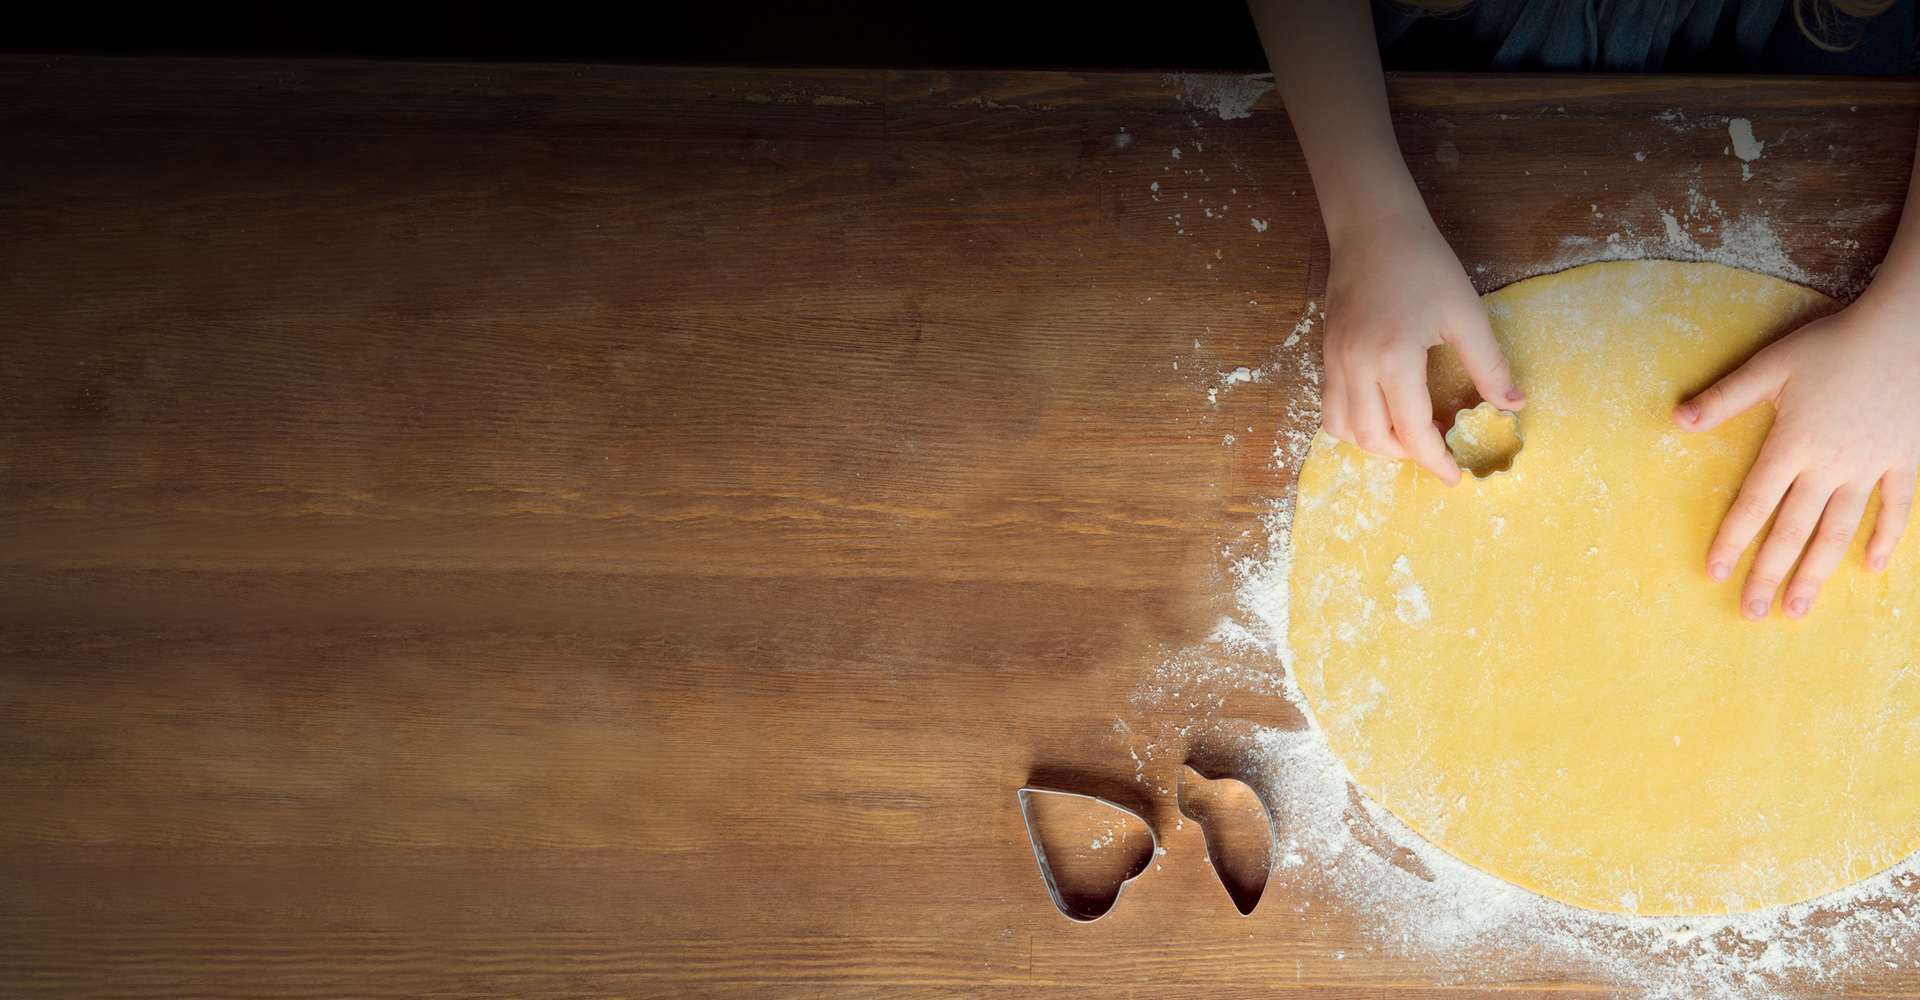 <img itemprop='image' style='width: .75em' src='/wp-content/uploads/2018/05/rightArrow.png' alt=''> Cookie cutters are for cookies, not financial plans.